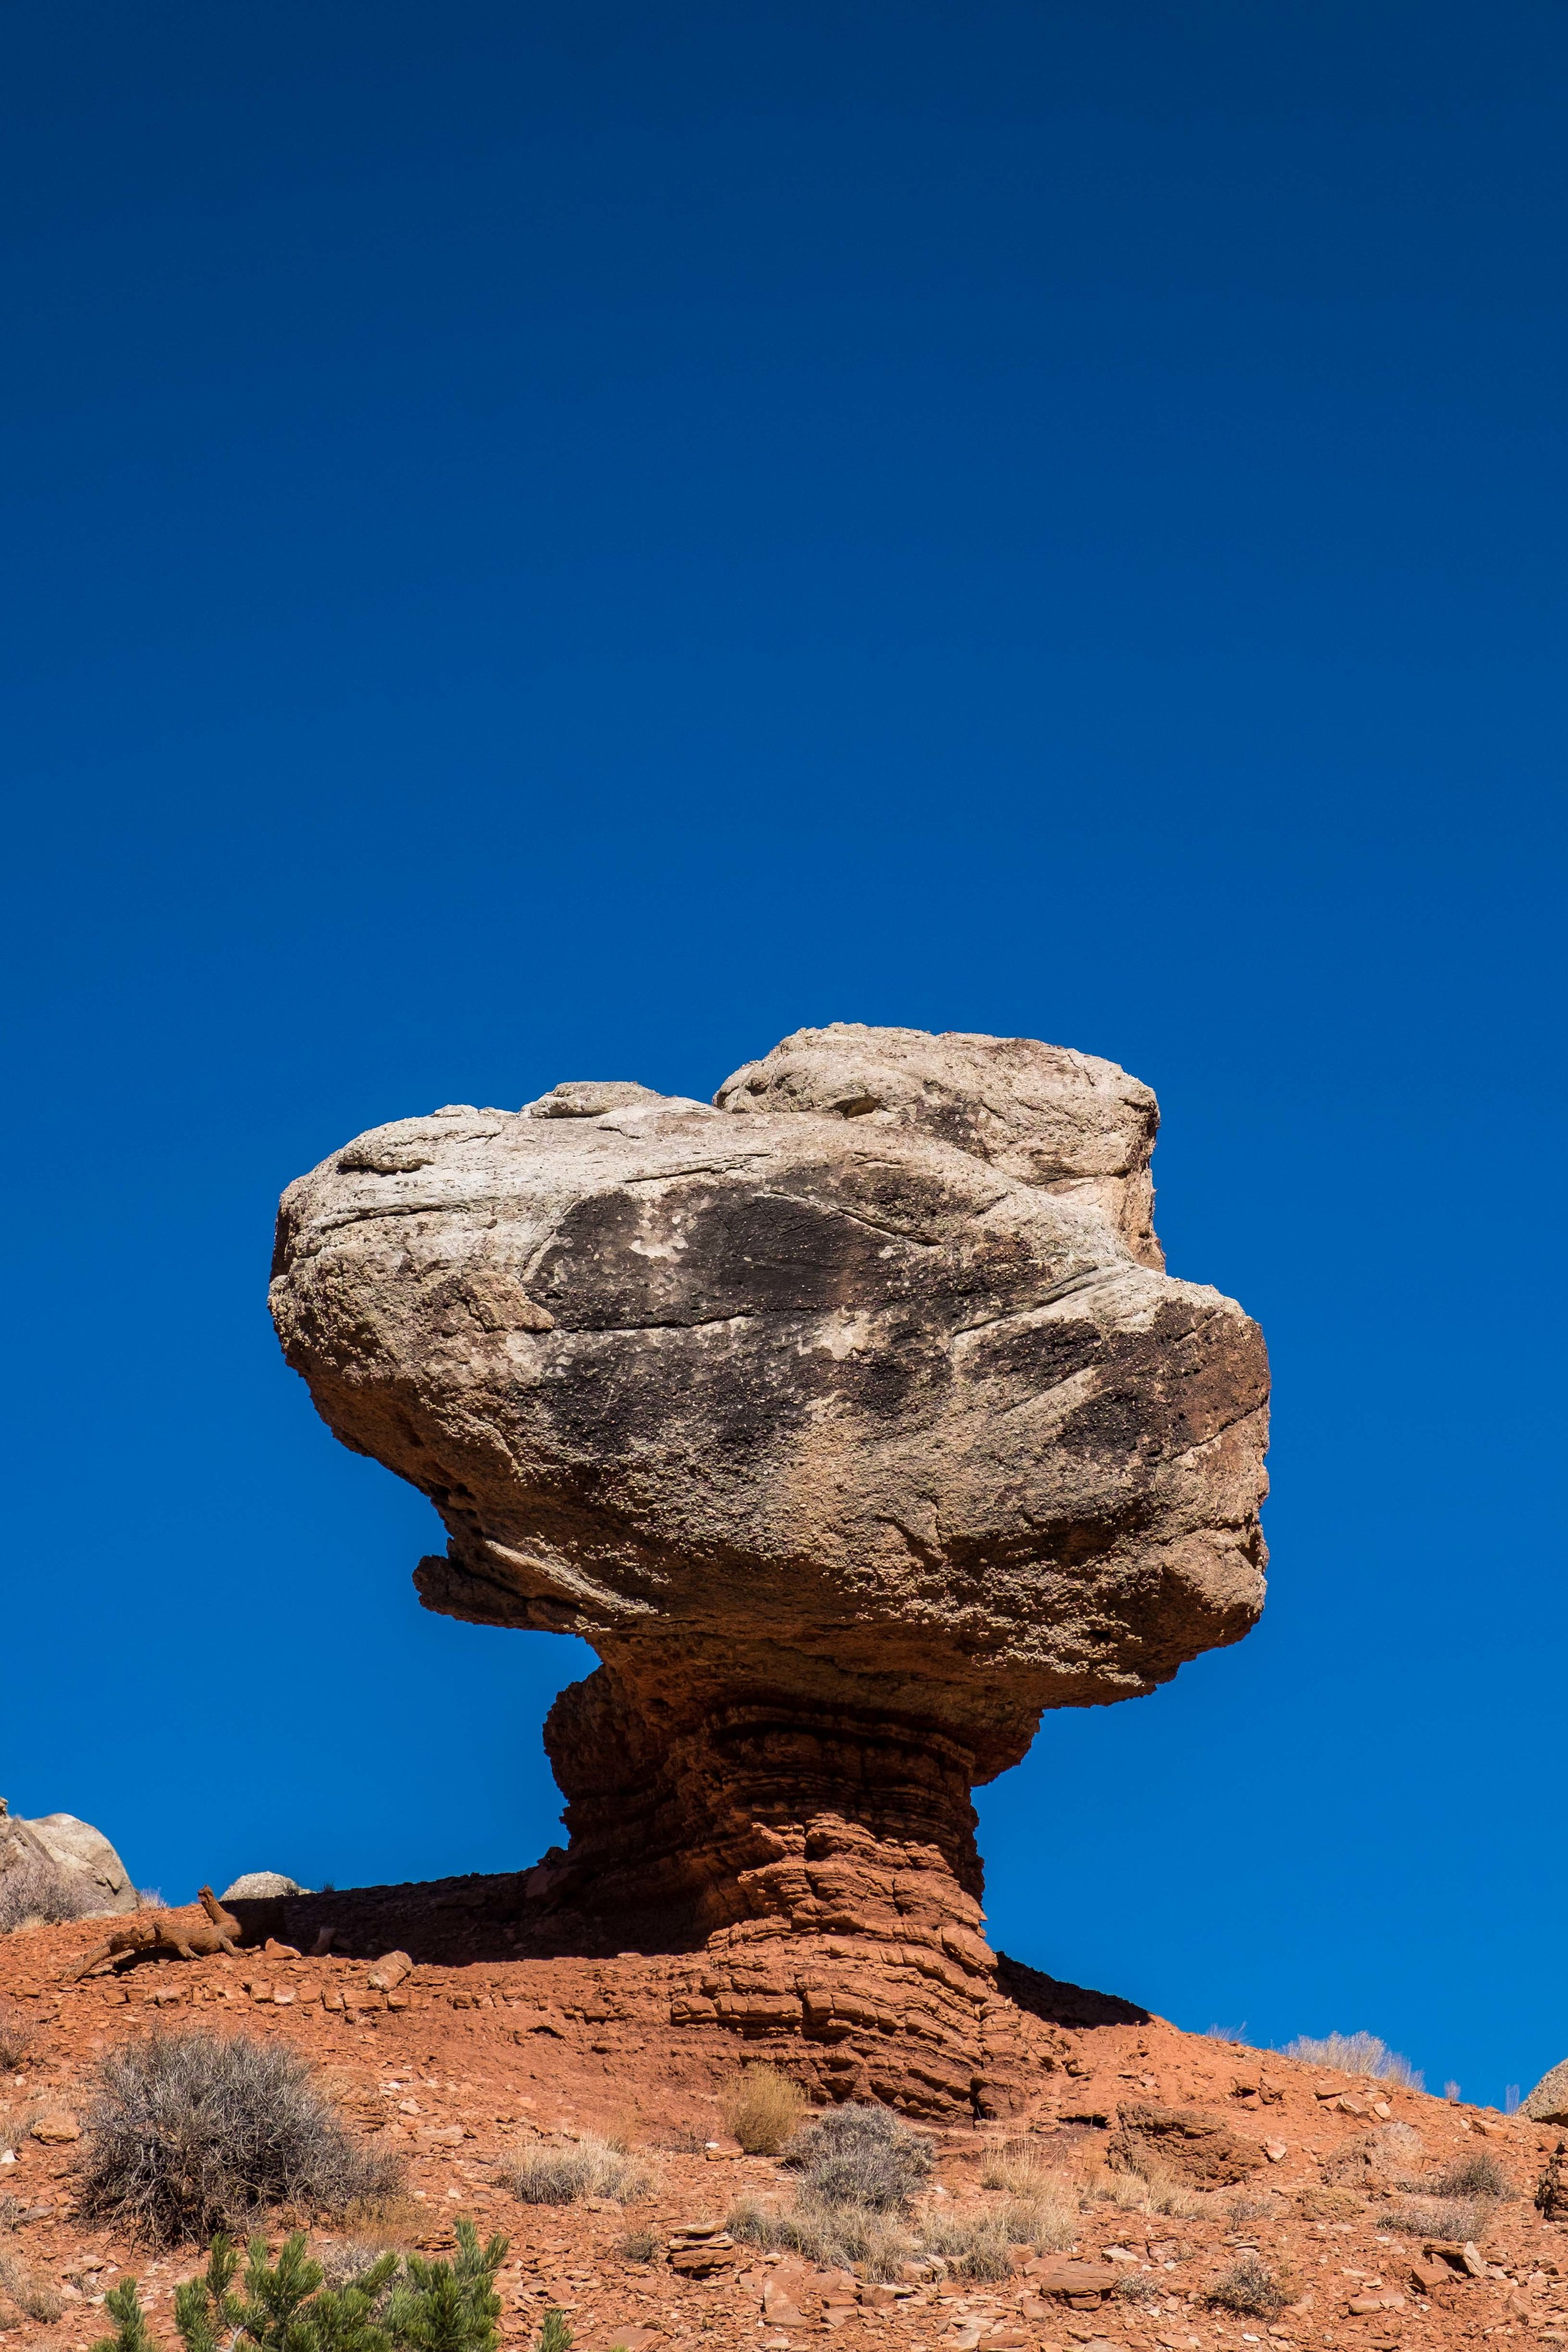 We saw this cool balanced rock along the road, not sure if it has a name...